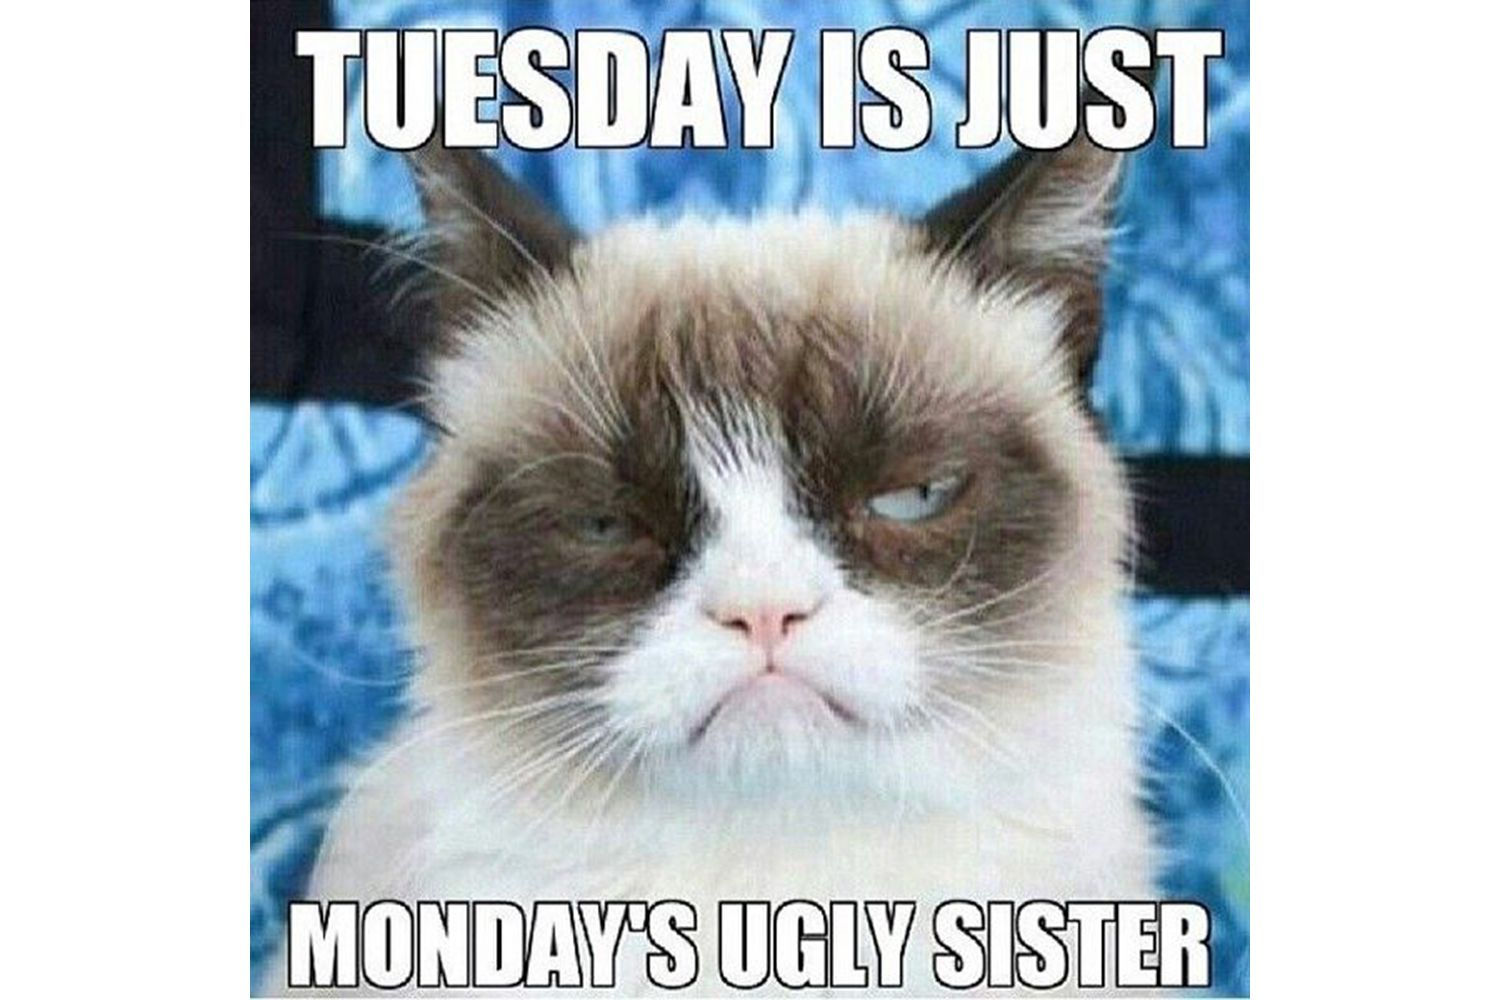 Grump Cat commenting on Tuesdays meme